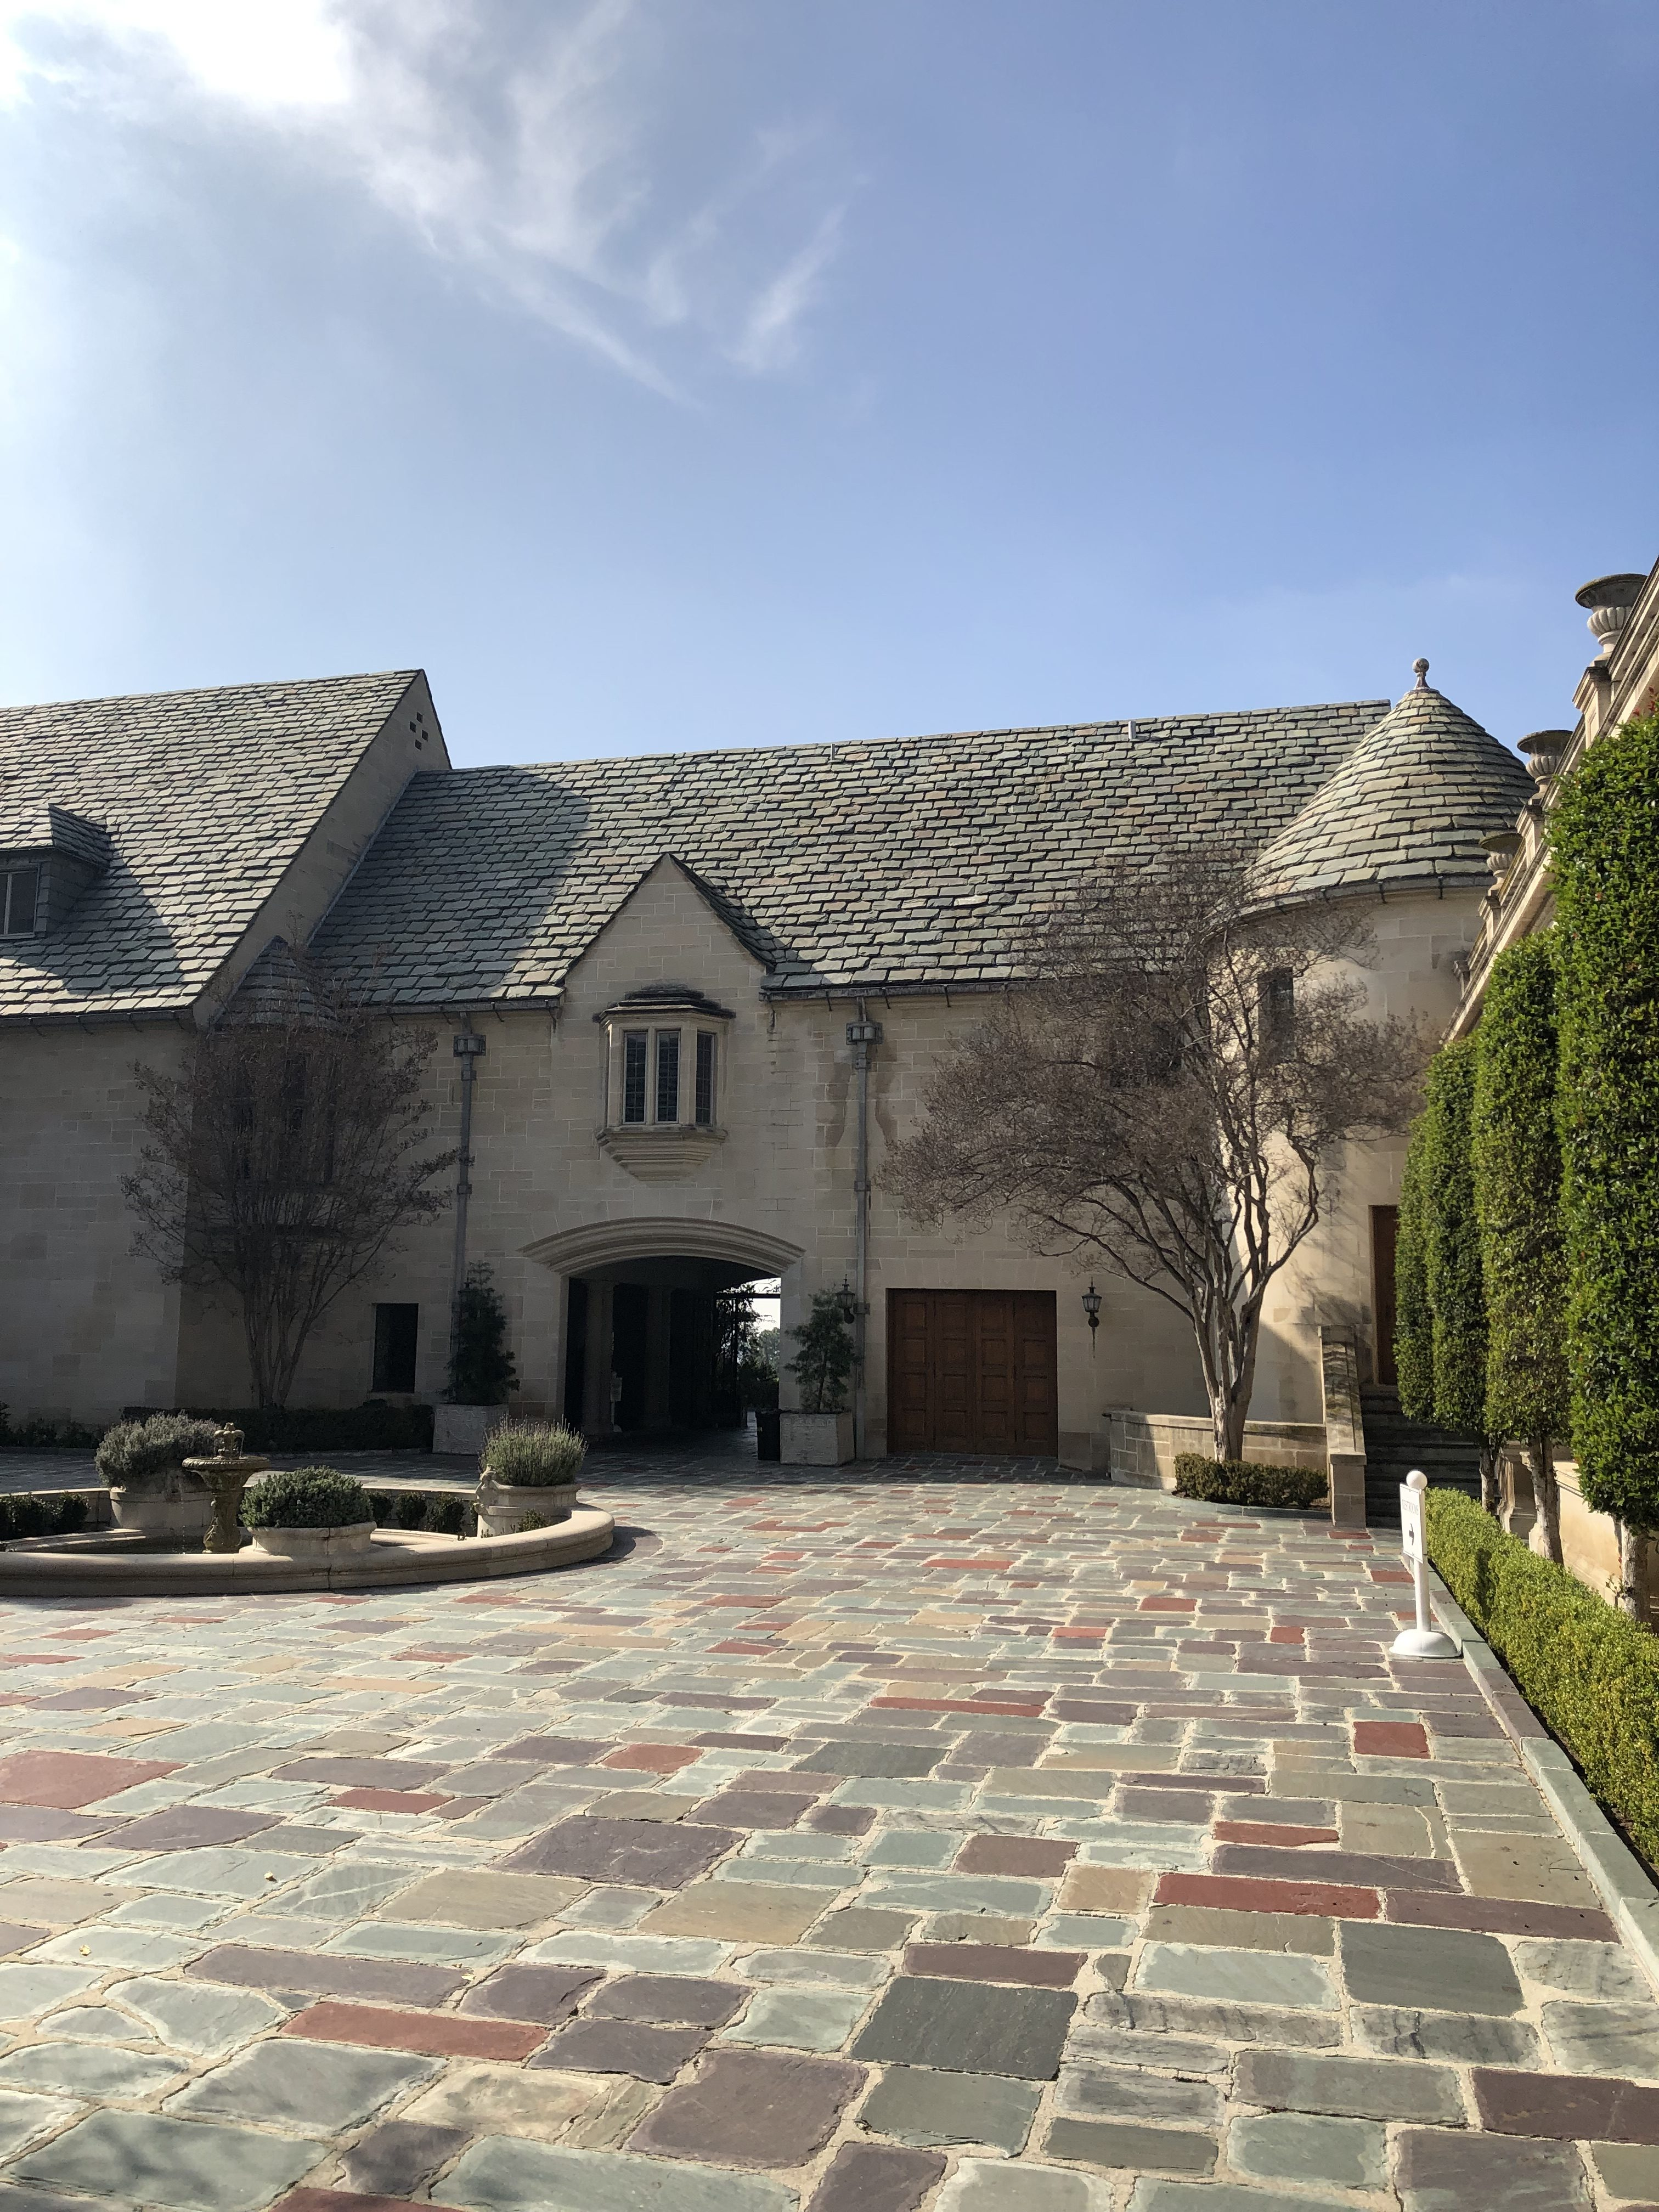 MEMA SoCal's First Meeting of the Year at the Greystone Mansion